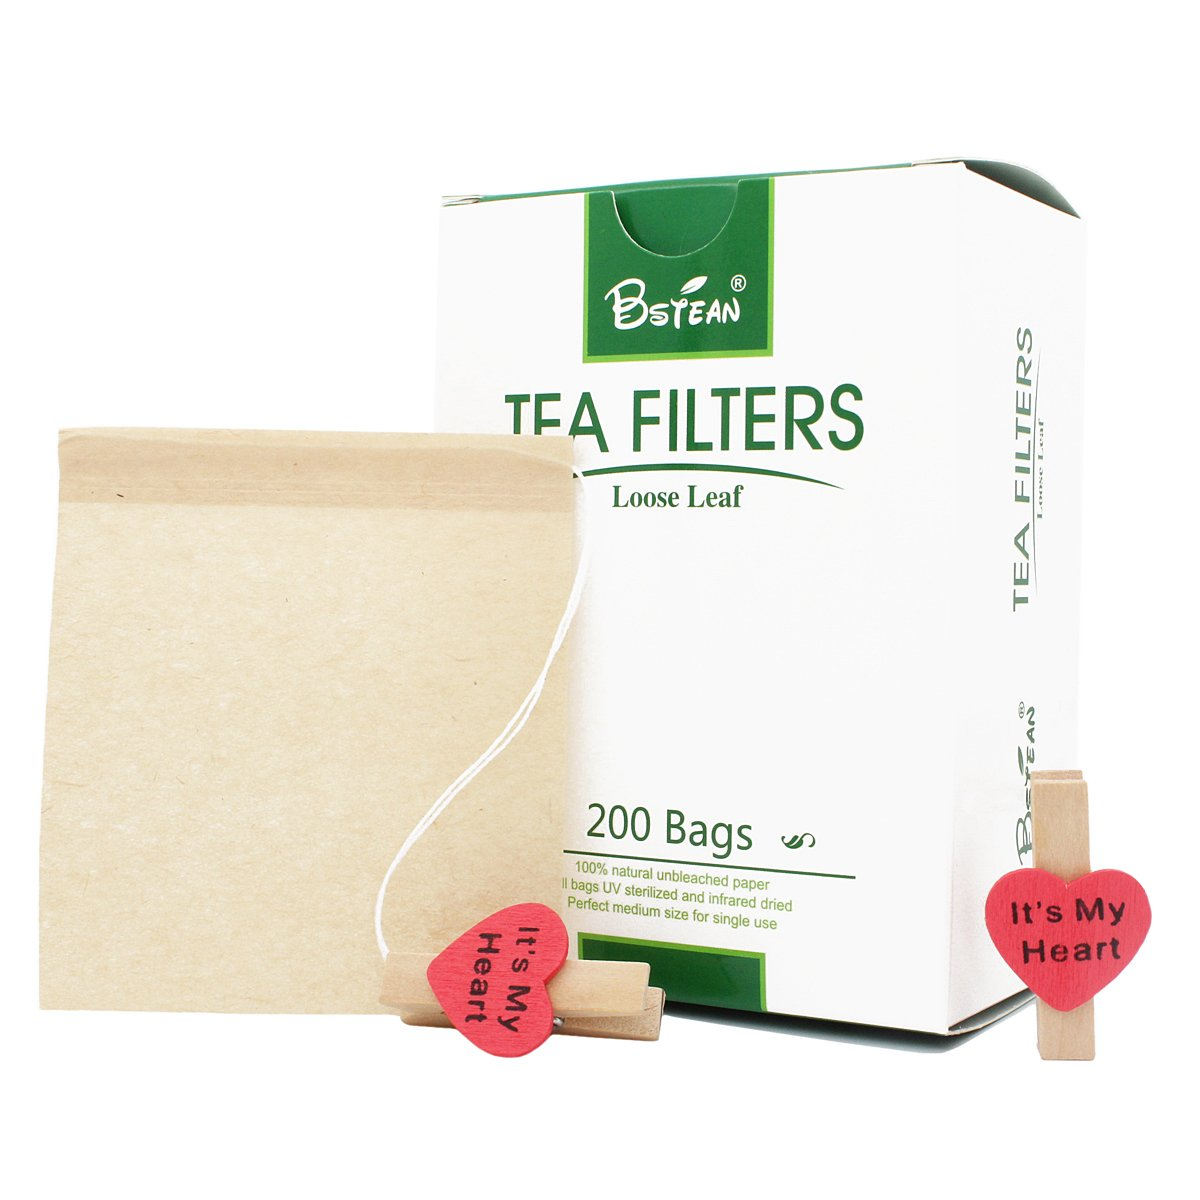 Bstean Tea Filter Bags Disposable Tea Infuser with Drawstring for Loose Leaf Tea with 100% Natural Unbleached Paper and 2 Free Clip (100 PCS x 2) by BSTEAN